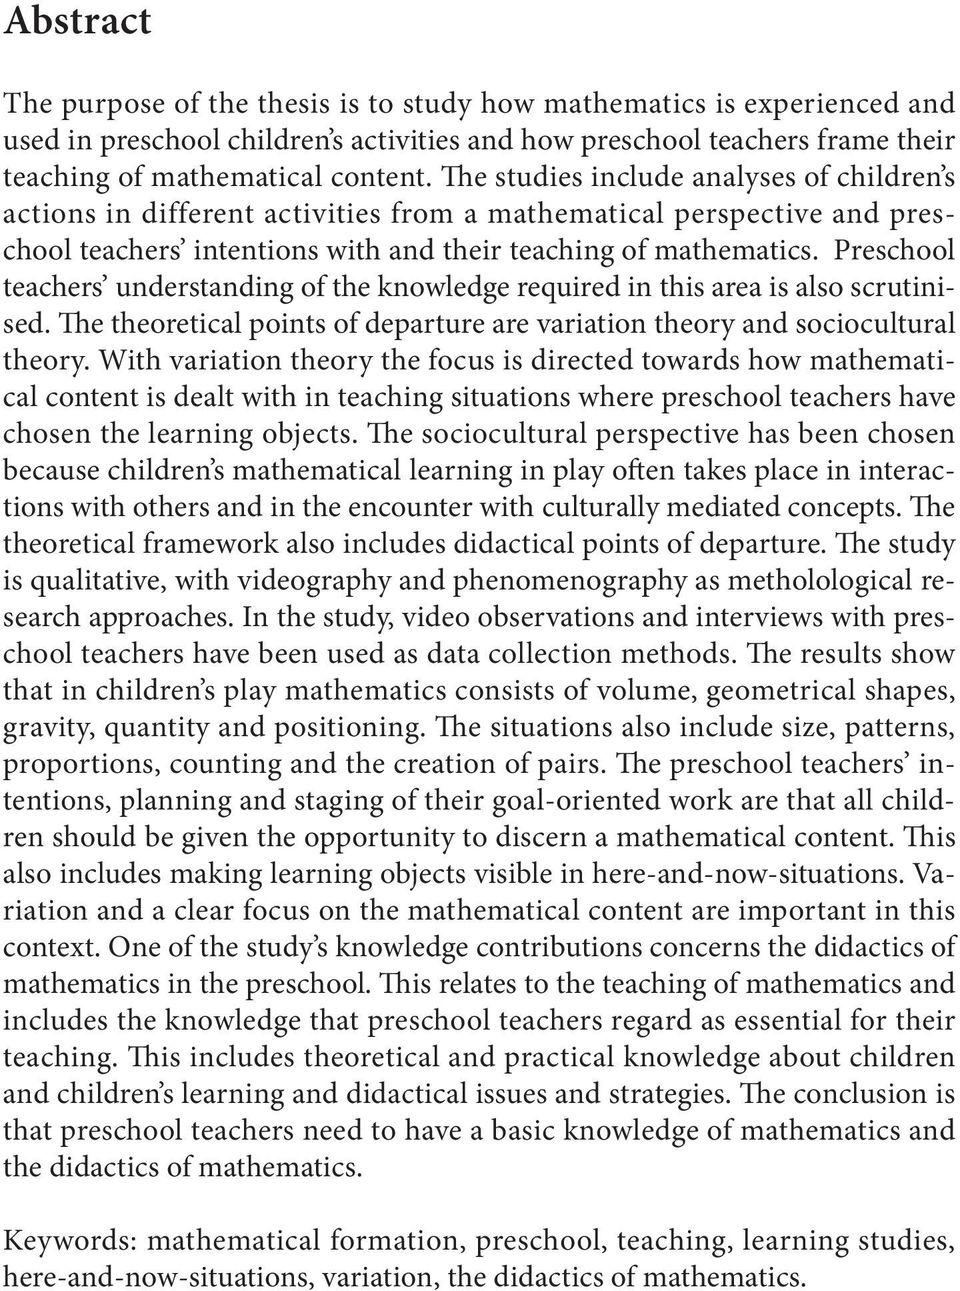 Preschool teachers understanding of the knowledge required in this area is also scrutinised. The theoretical points of departure are variation theory and sociocultural theory.